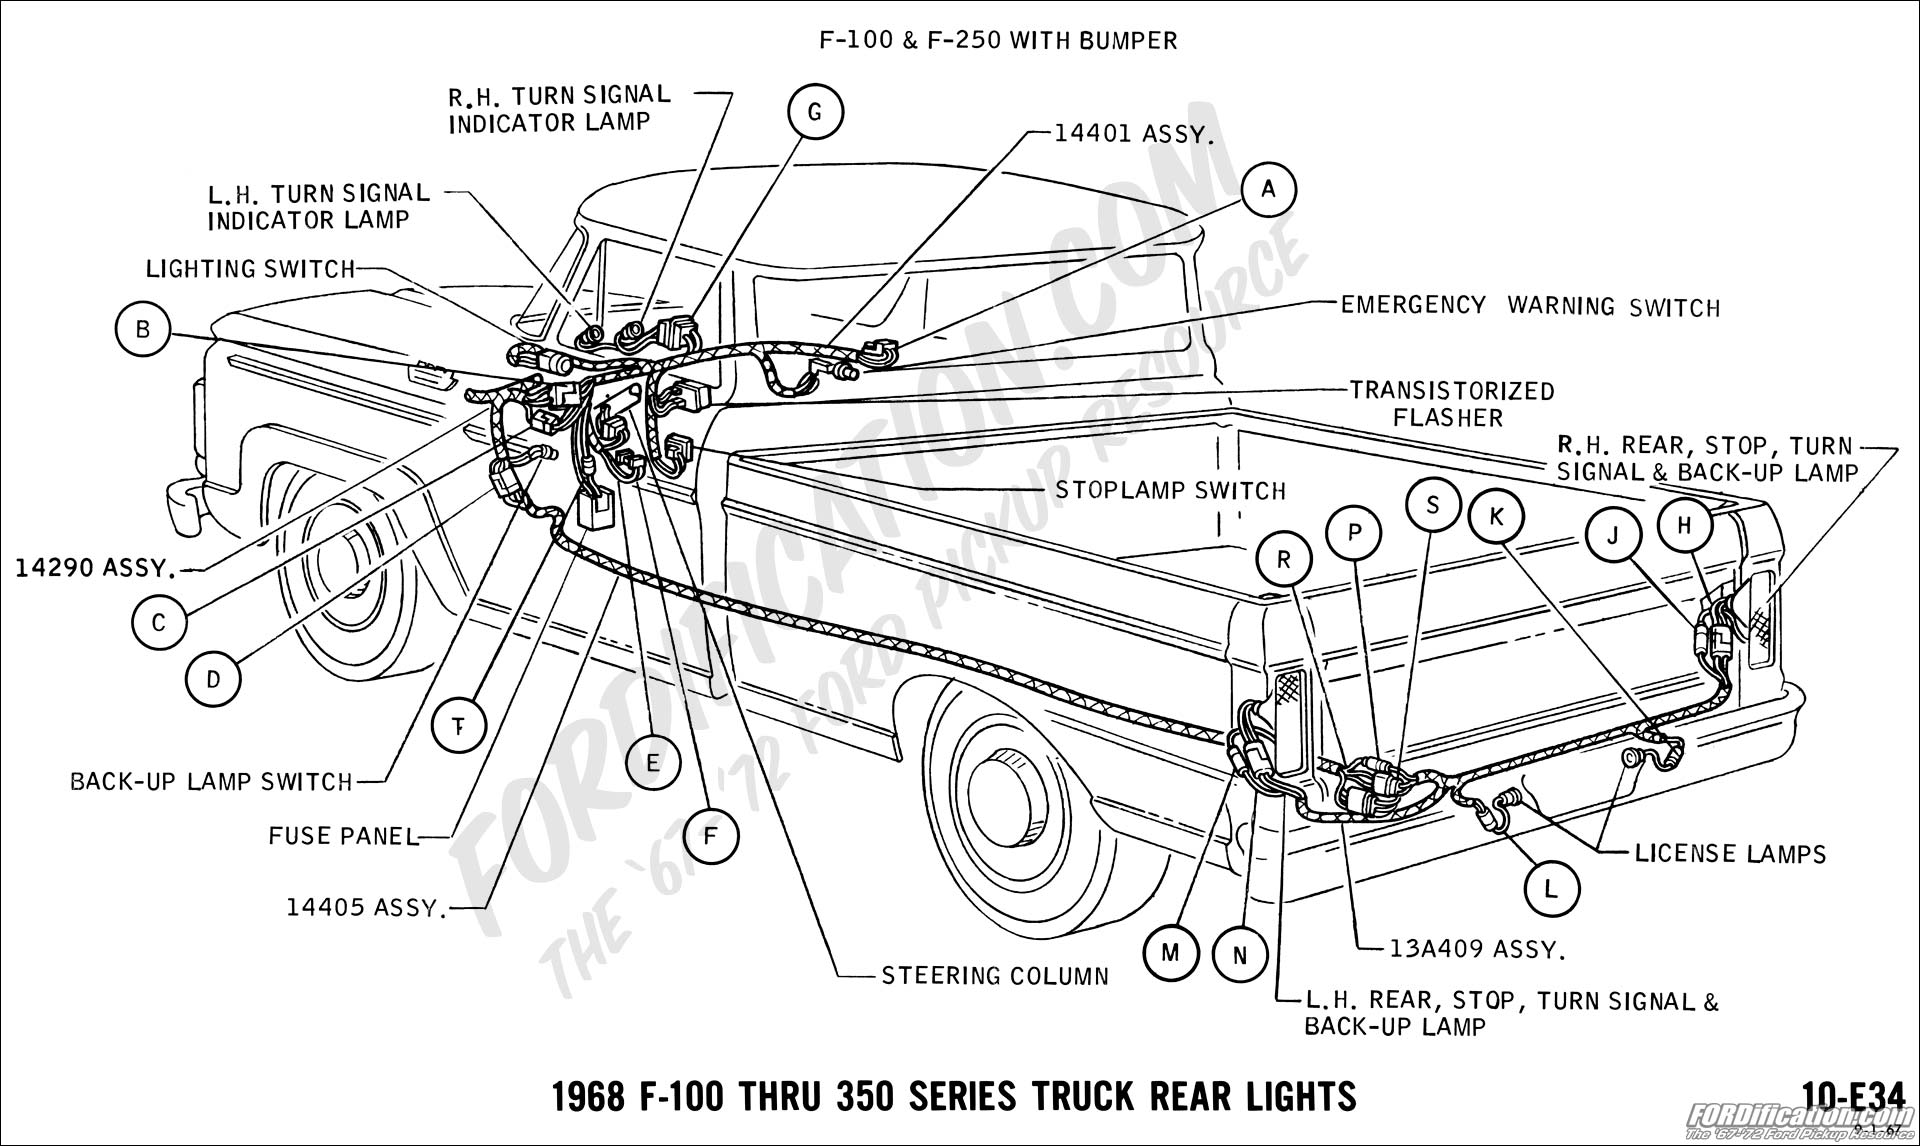 1966 ford f 150 wiring diagrams with 1969 Ford F350 Wiring Diagram on 879177 Alternator Voltage Regulator Wiring also 1279644 1977 F 250 4x4 Dimensions moreover P 0900c1528007bdaa moreover Parts Front Suspension  ponents Diagram Car as well Schematics h.